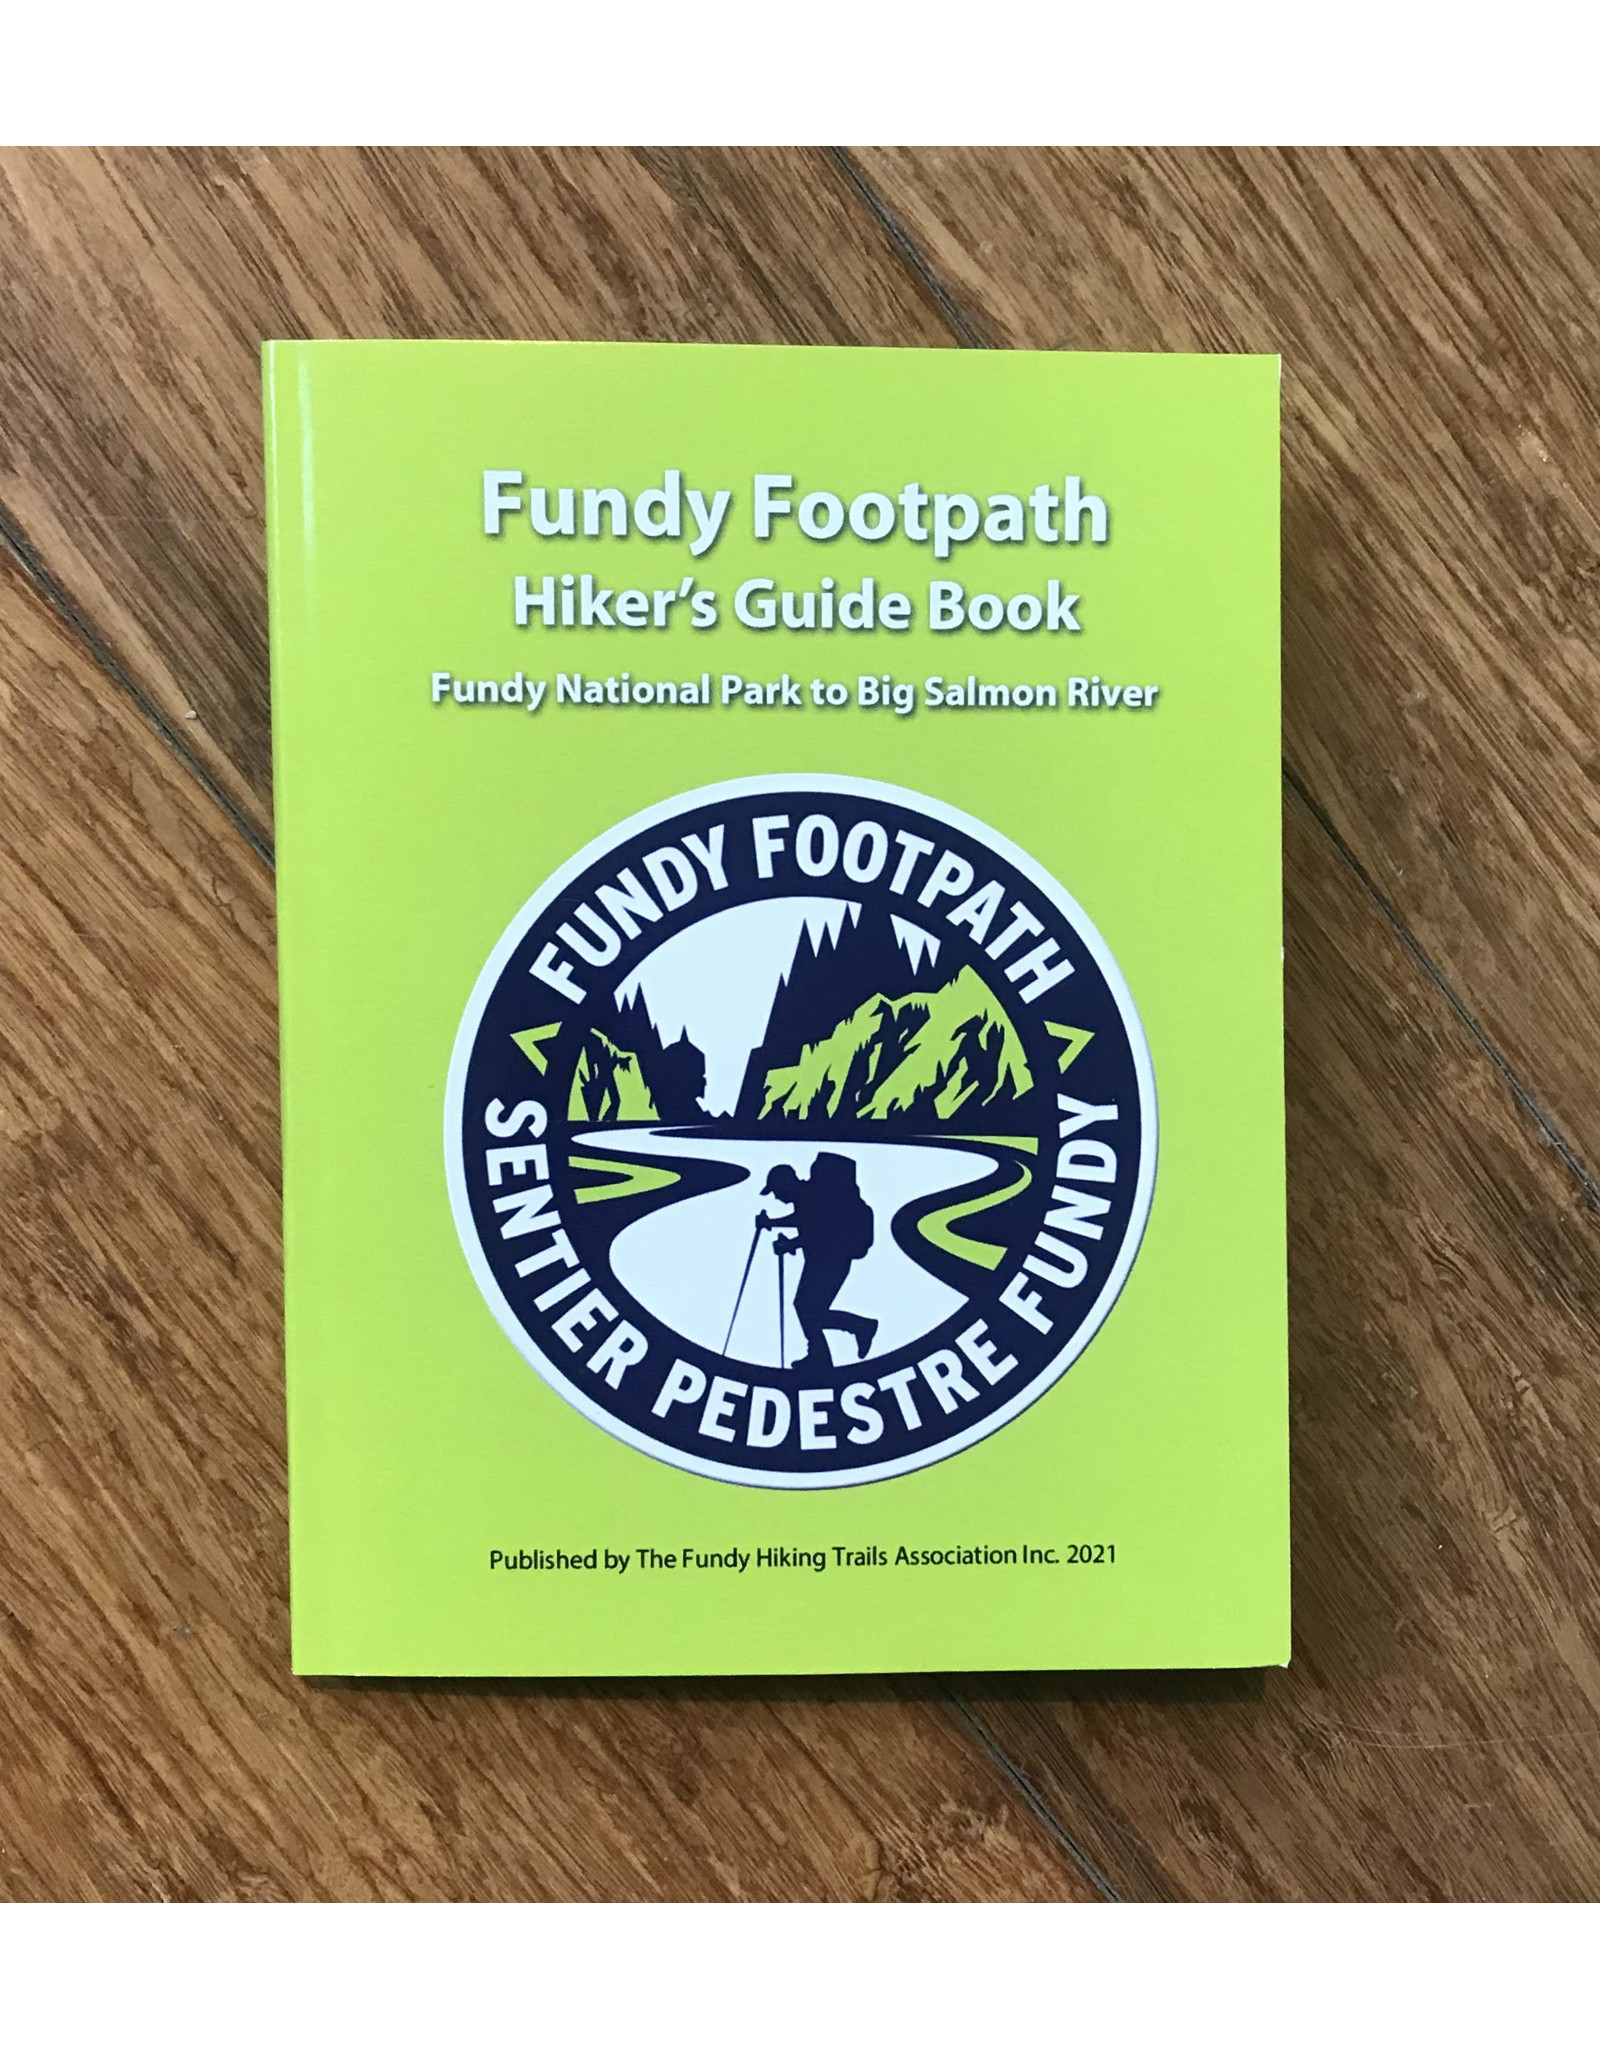 Fundy Footpath Guide Book